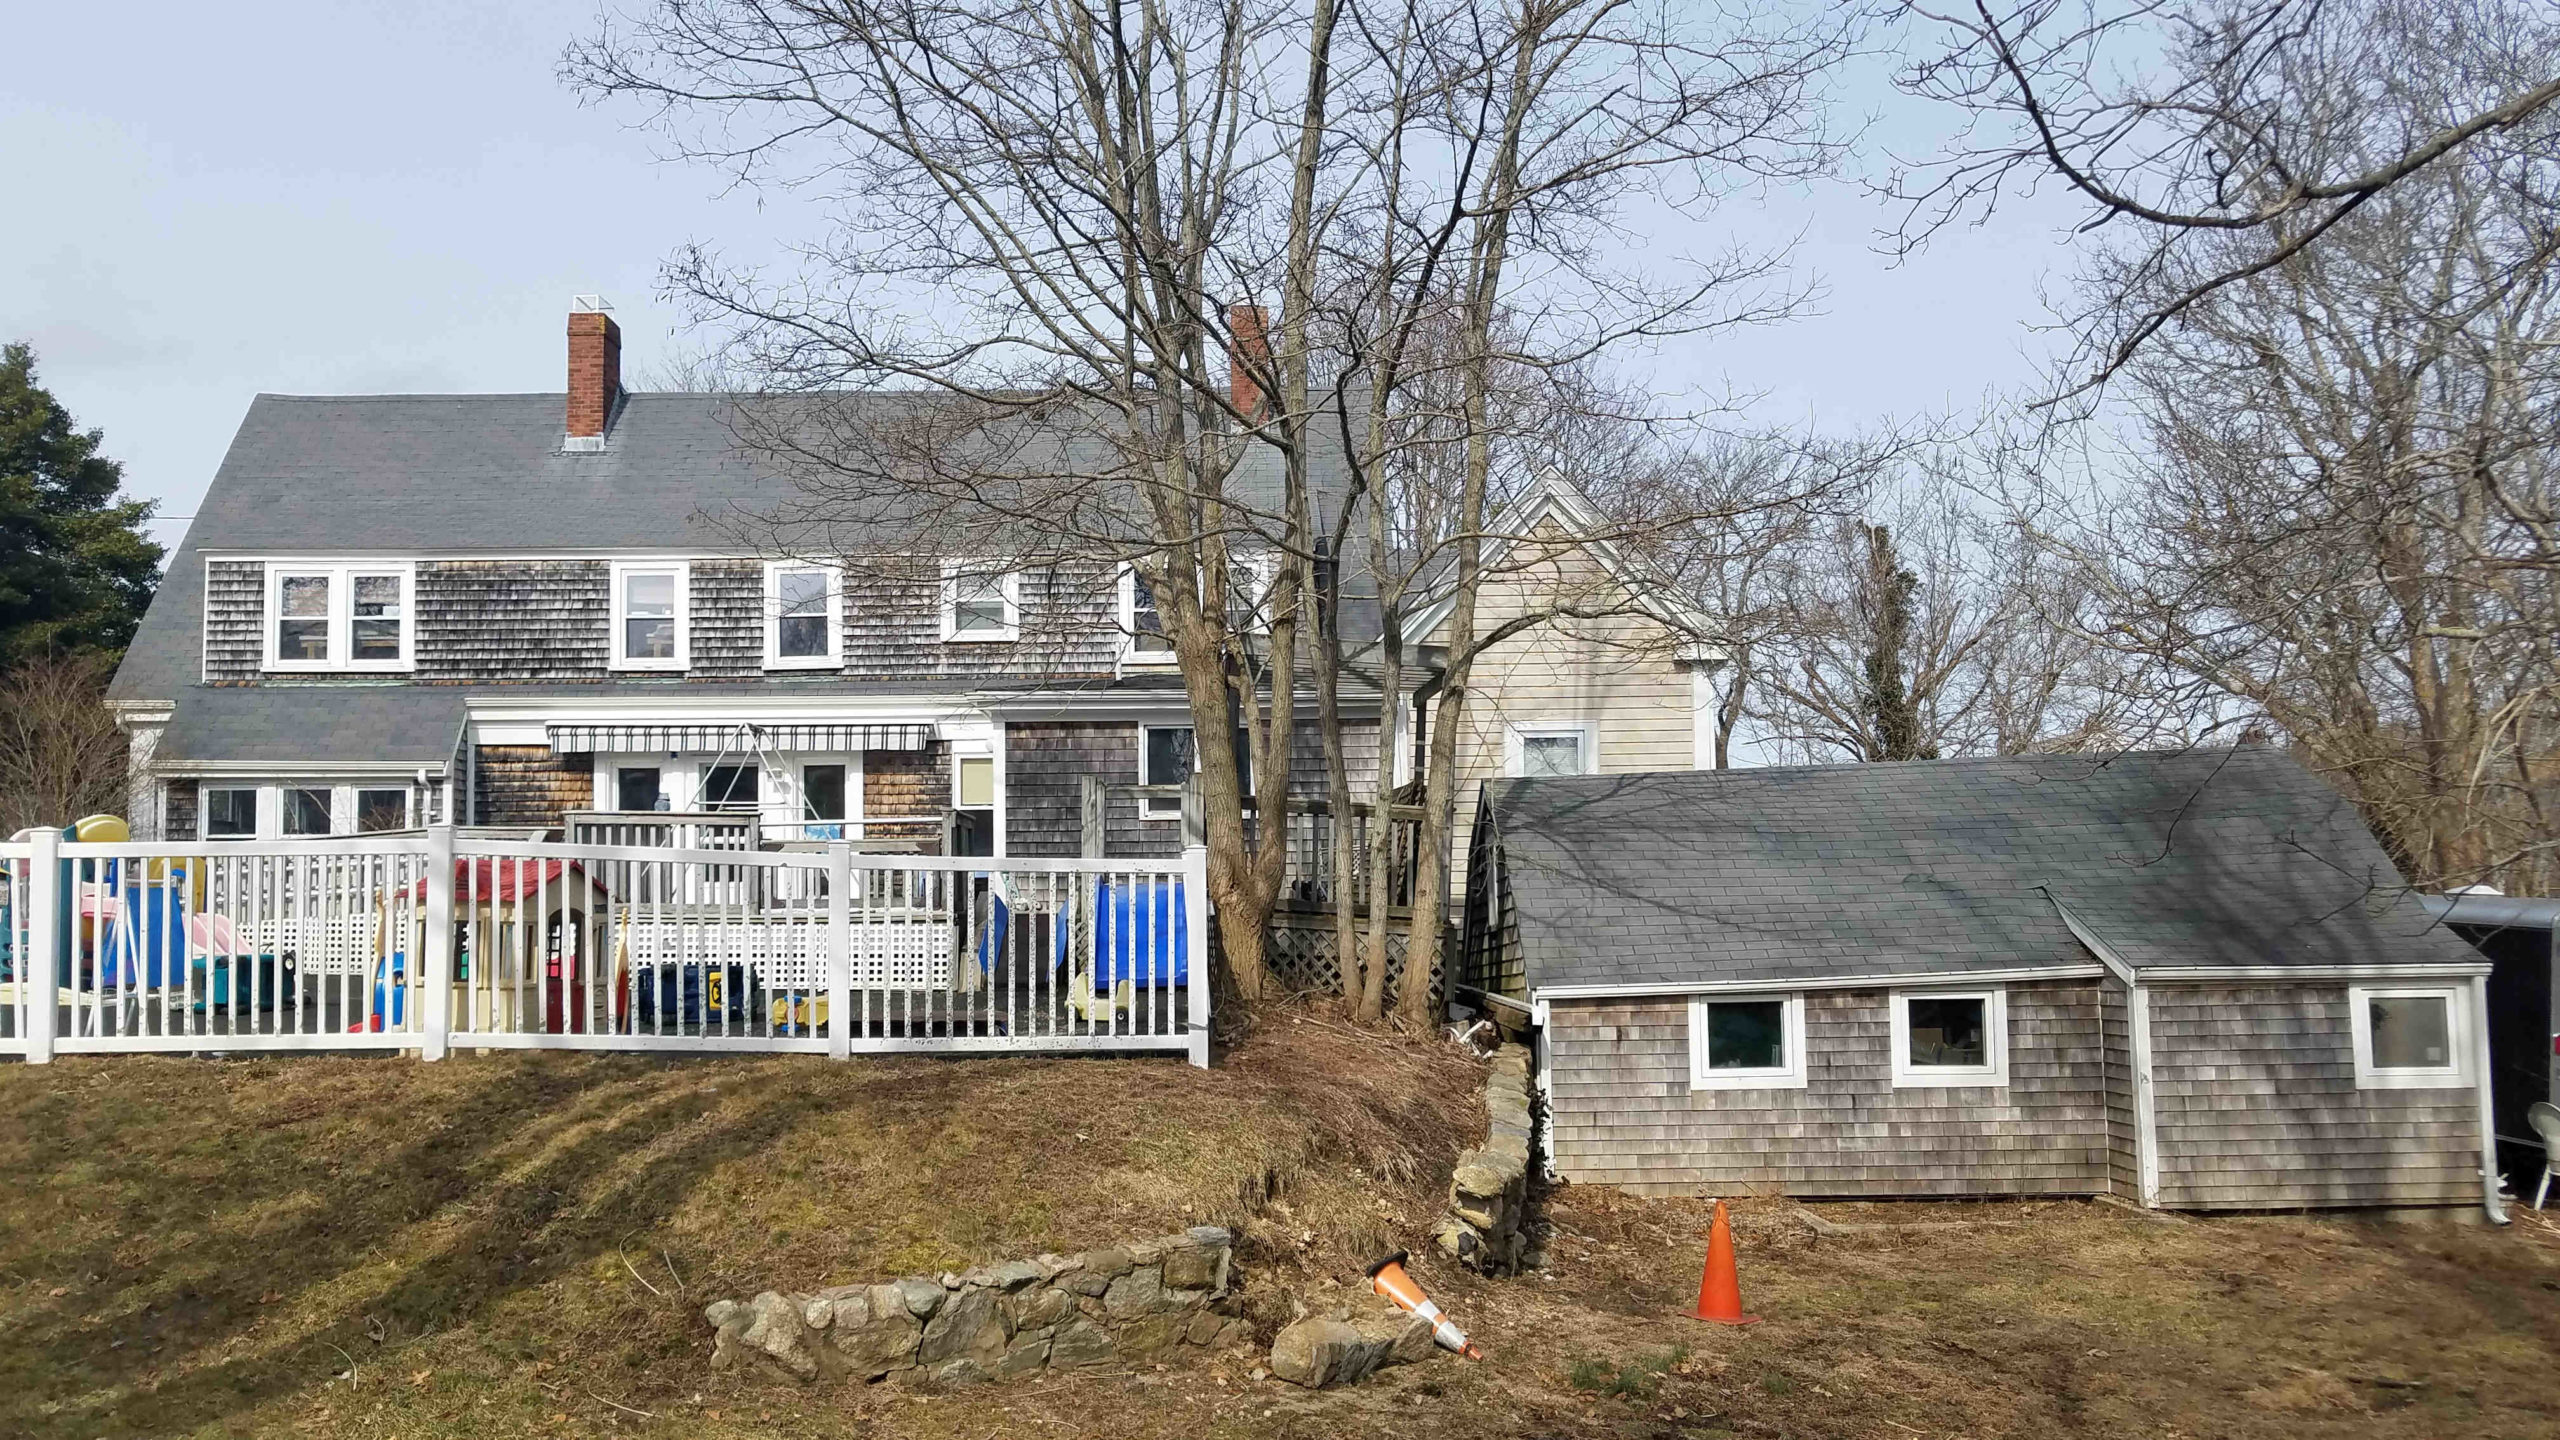 80 Pearl Street, Hyannis, MA: Downtown Hyannis Office Building/Day Care Center For Sale (SOLD!)